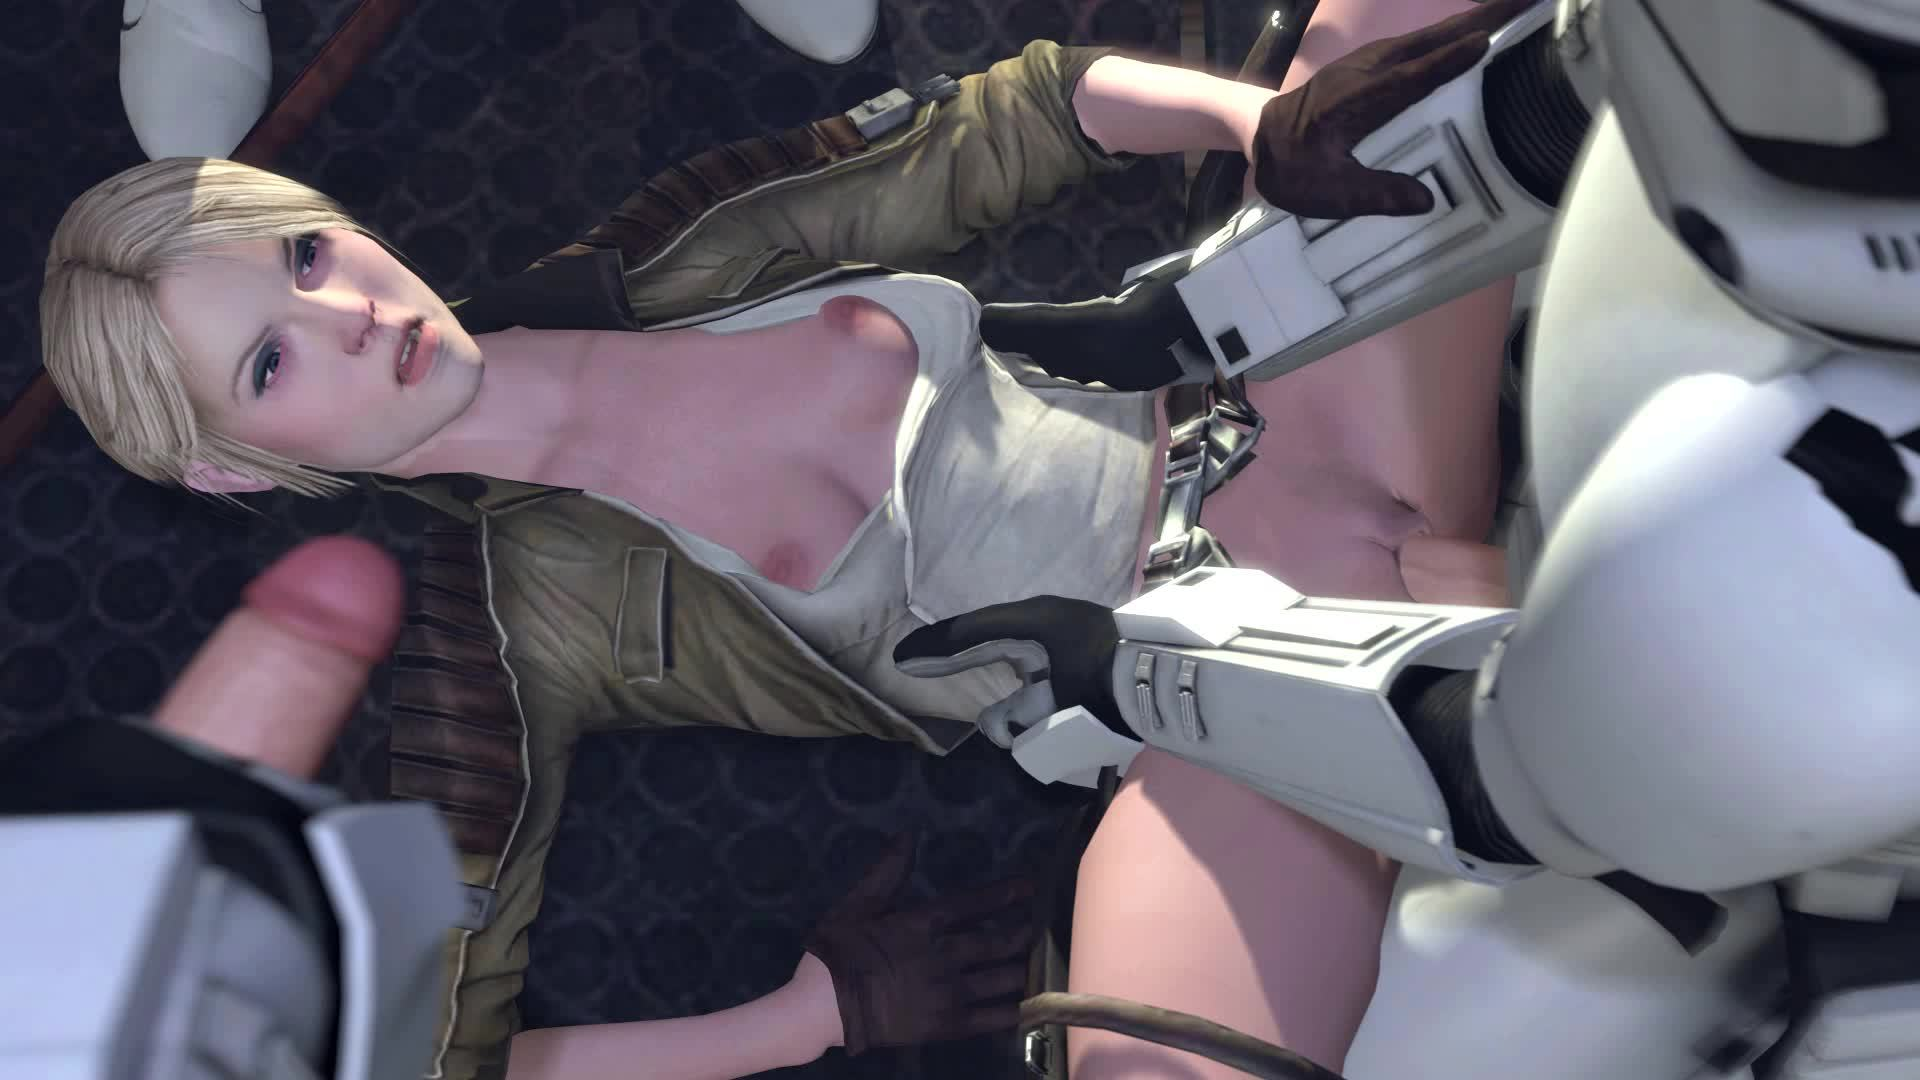 Star wars sex anime xxx picture